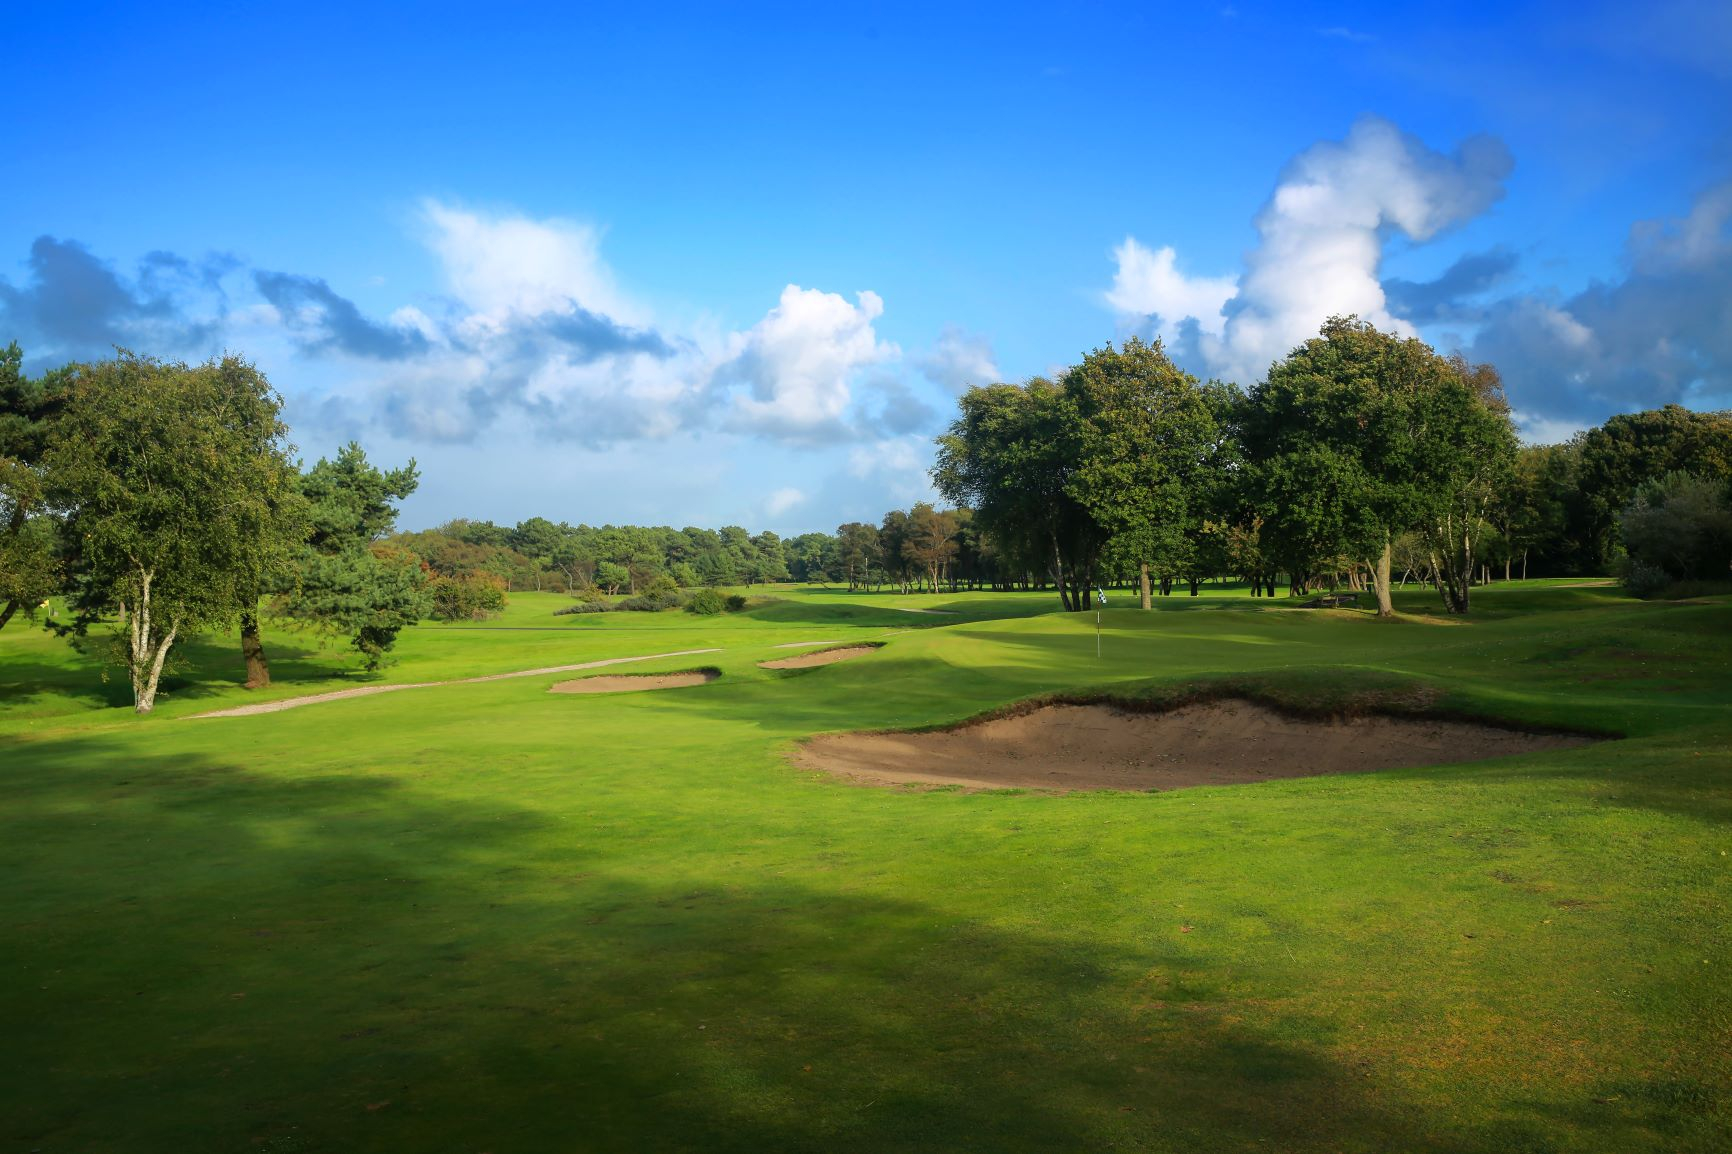 Le Touquet La Foret Golf Club-15641